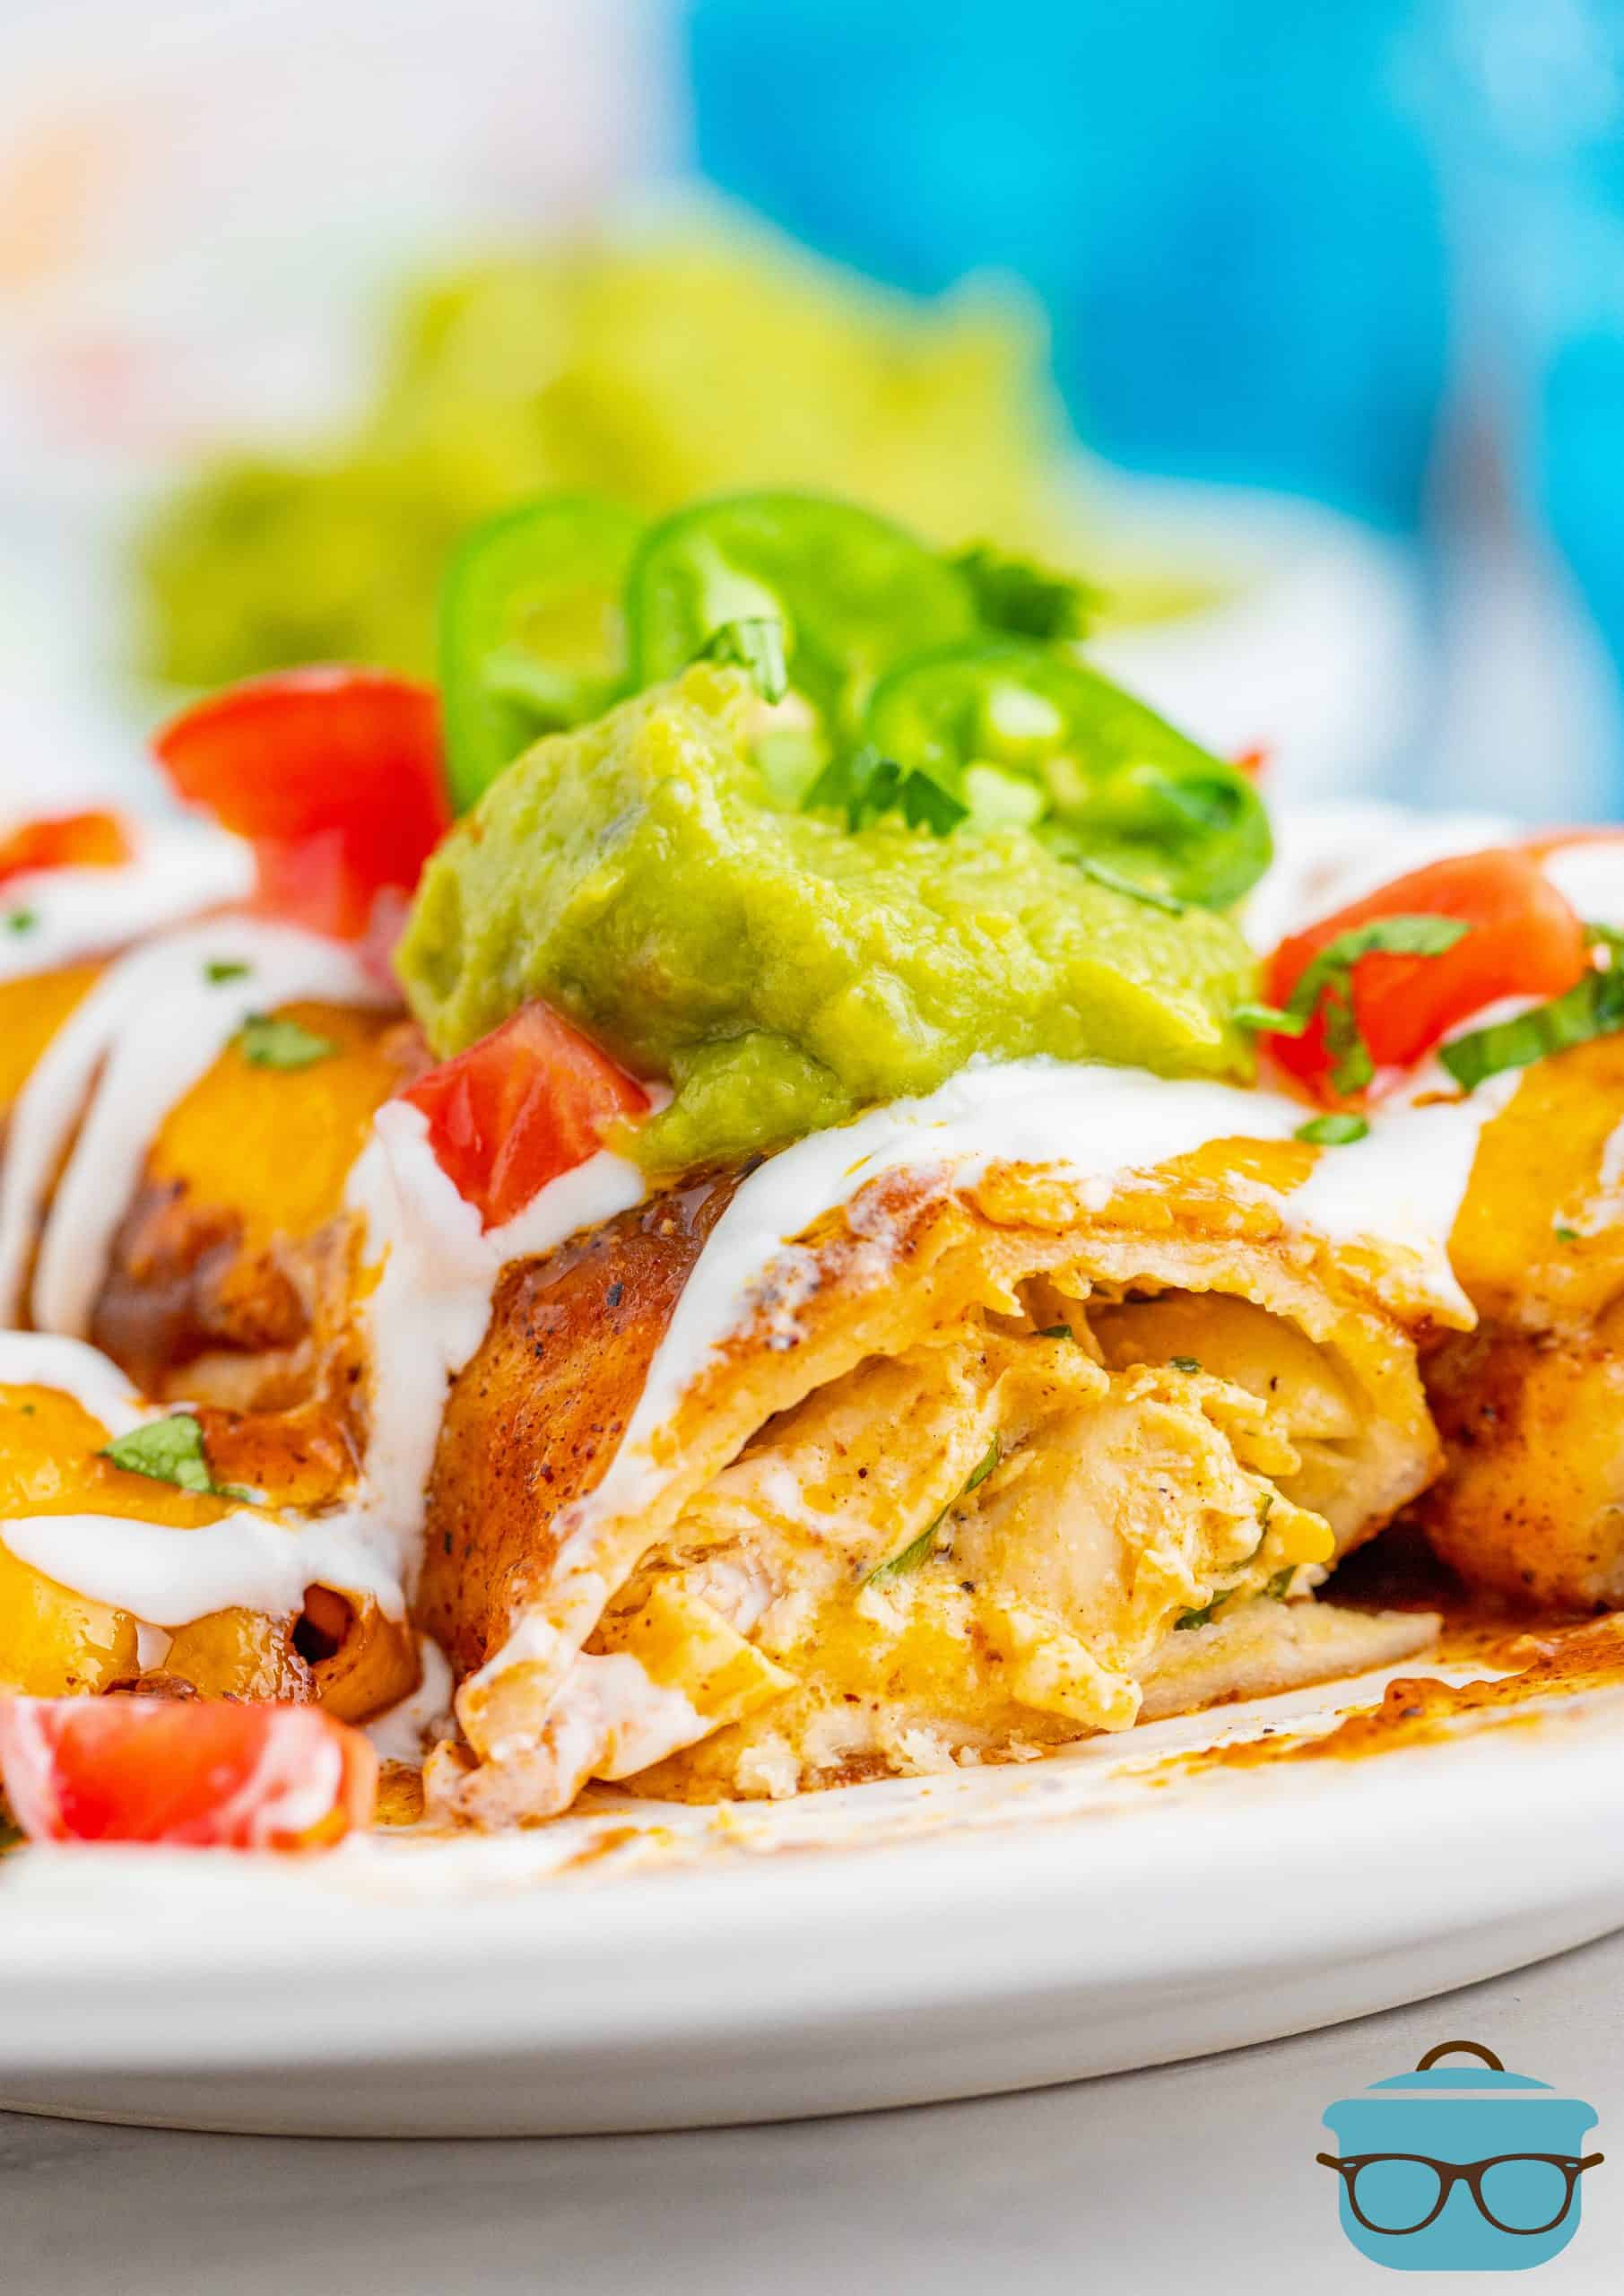 photo showing the inside of the chicken enchilada with guacamole and cream sauce on top.